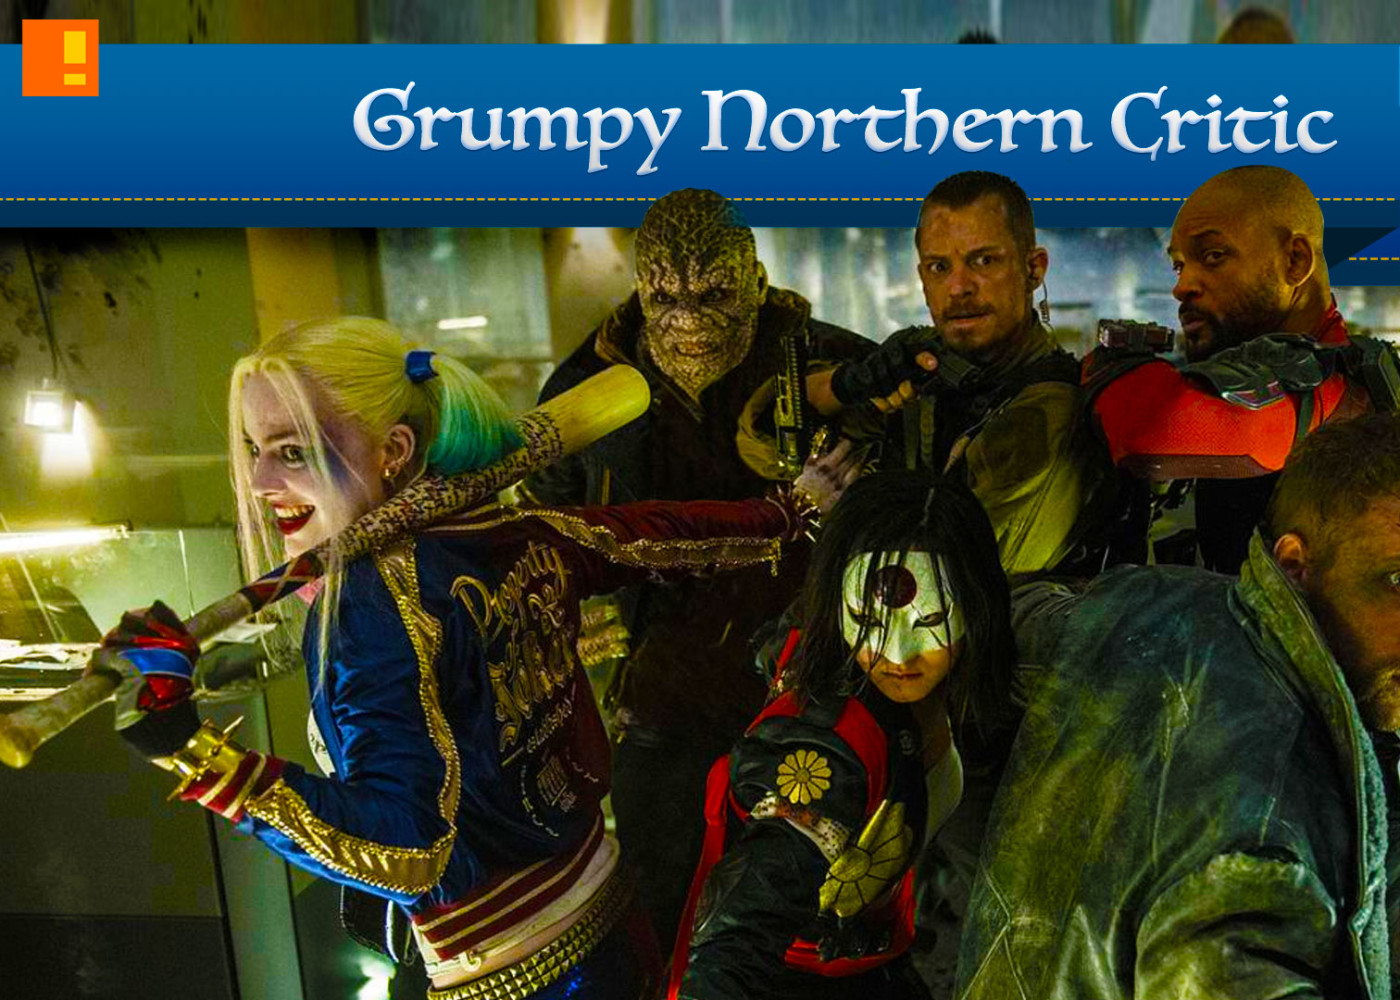 grumpy northern critic .suicide squad. the action pixel. @theactionpixel